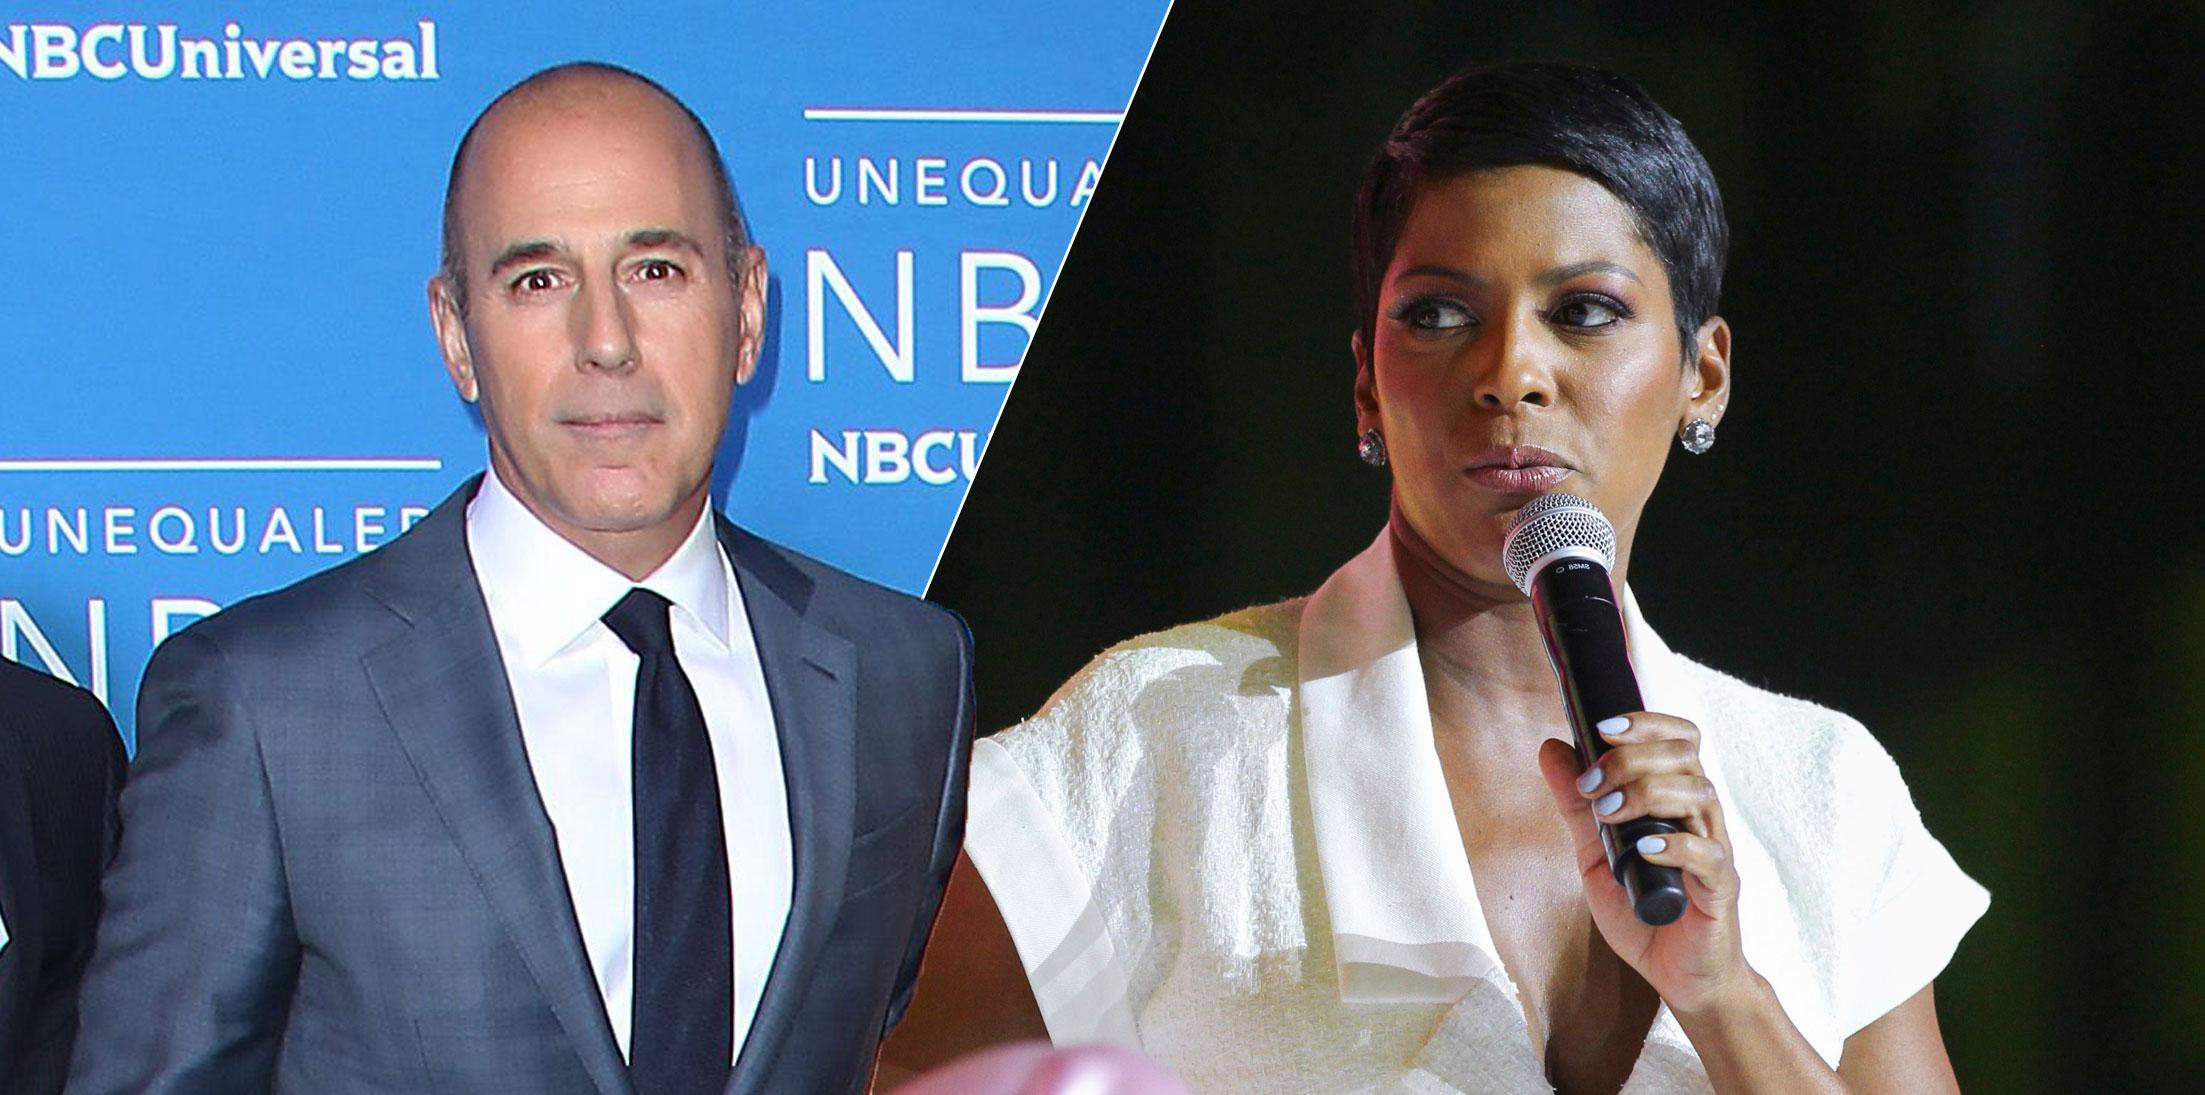 Matt Lauer Planning Interview With 'Today Show' Pal Tamron Hall